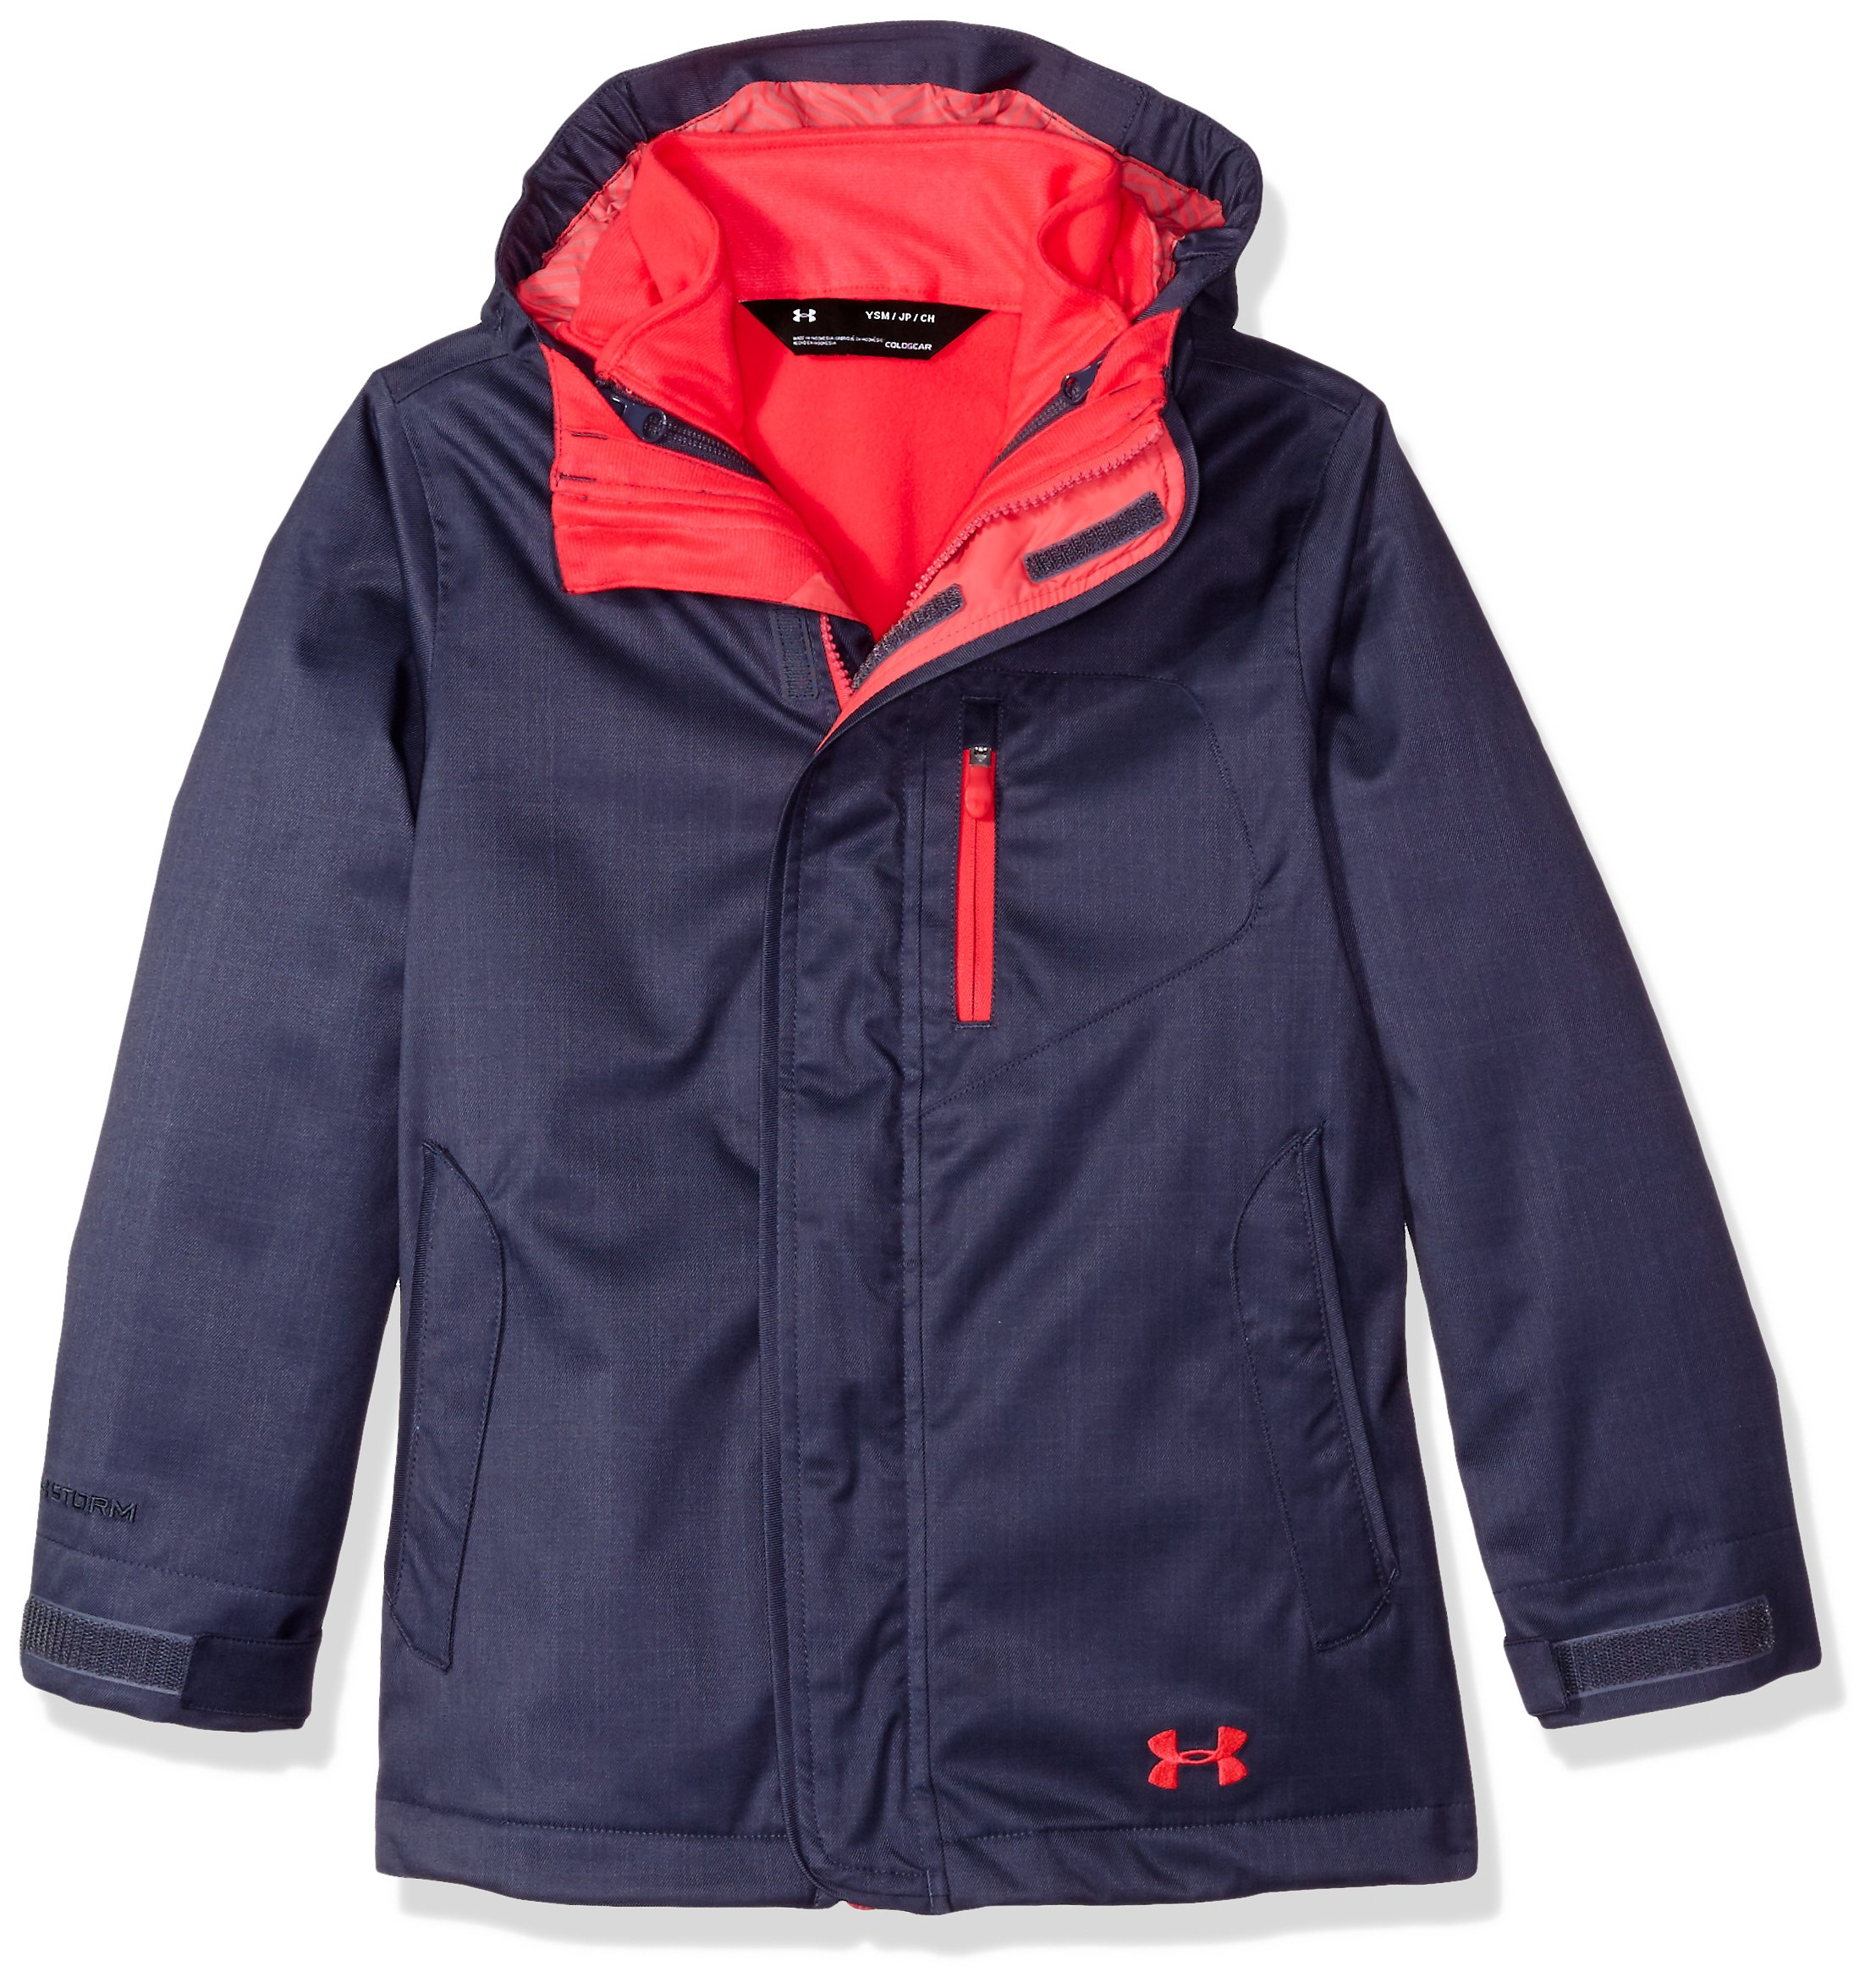 Under Armour Girls' ColdGear Infrared Gemma 3-in-1 Jacket, Apollo Gray/Penta Pink, Youth Large